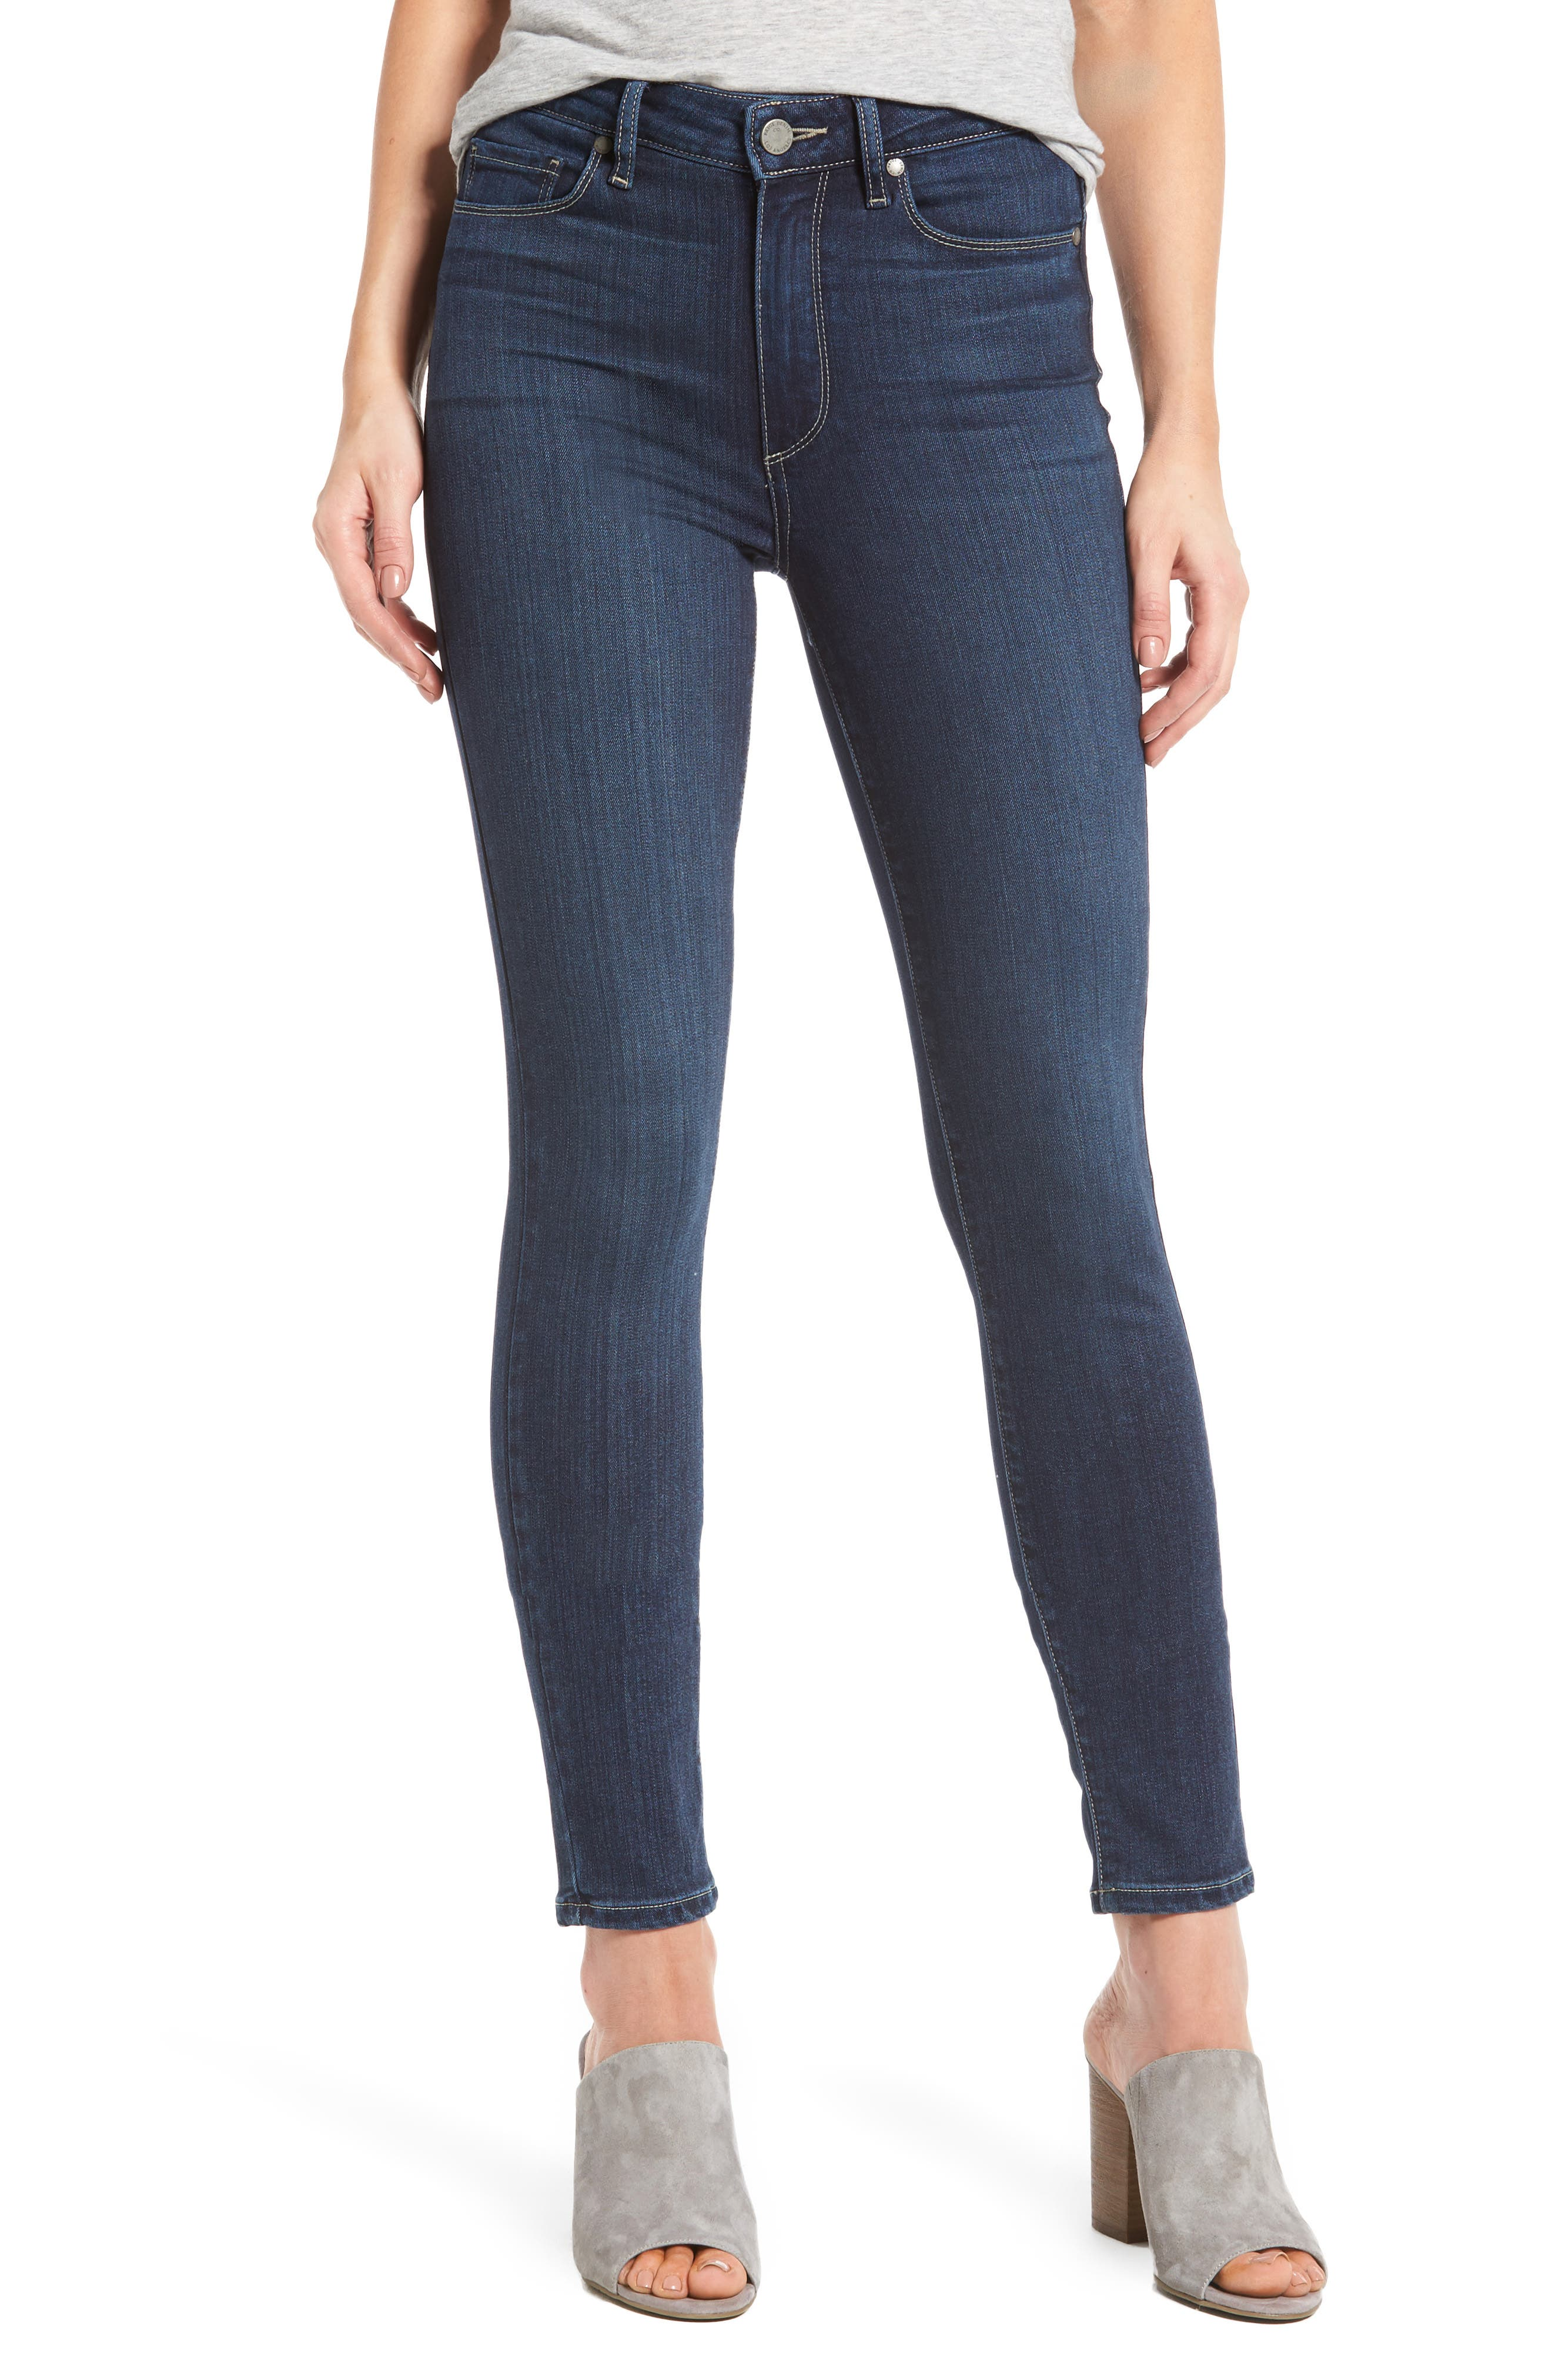 Image of PAIGE Transcend Hoxton High Waist Ankle Skinny Jeans